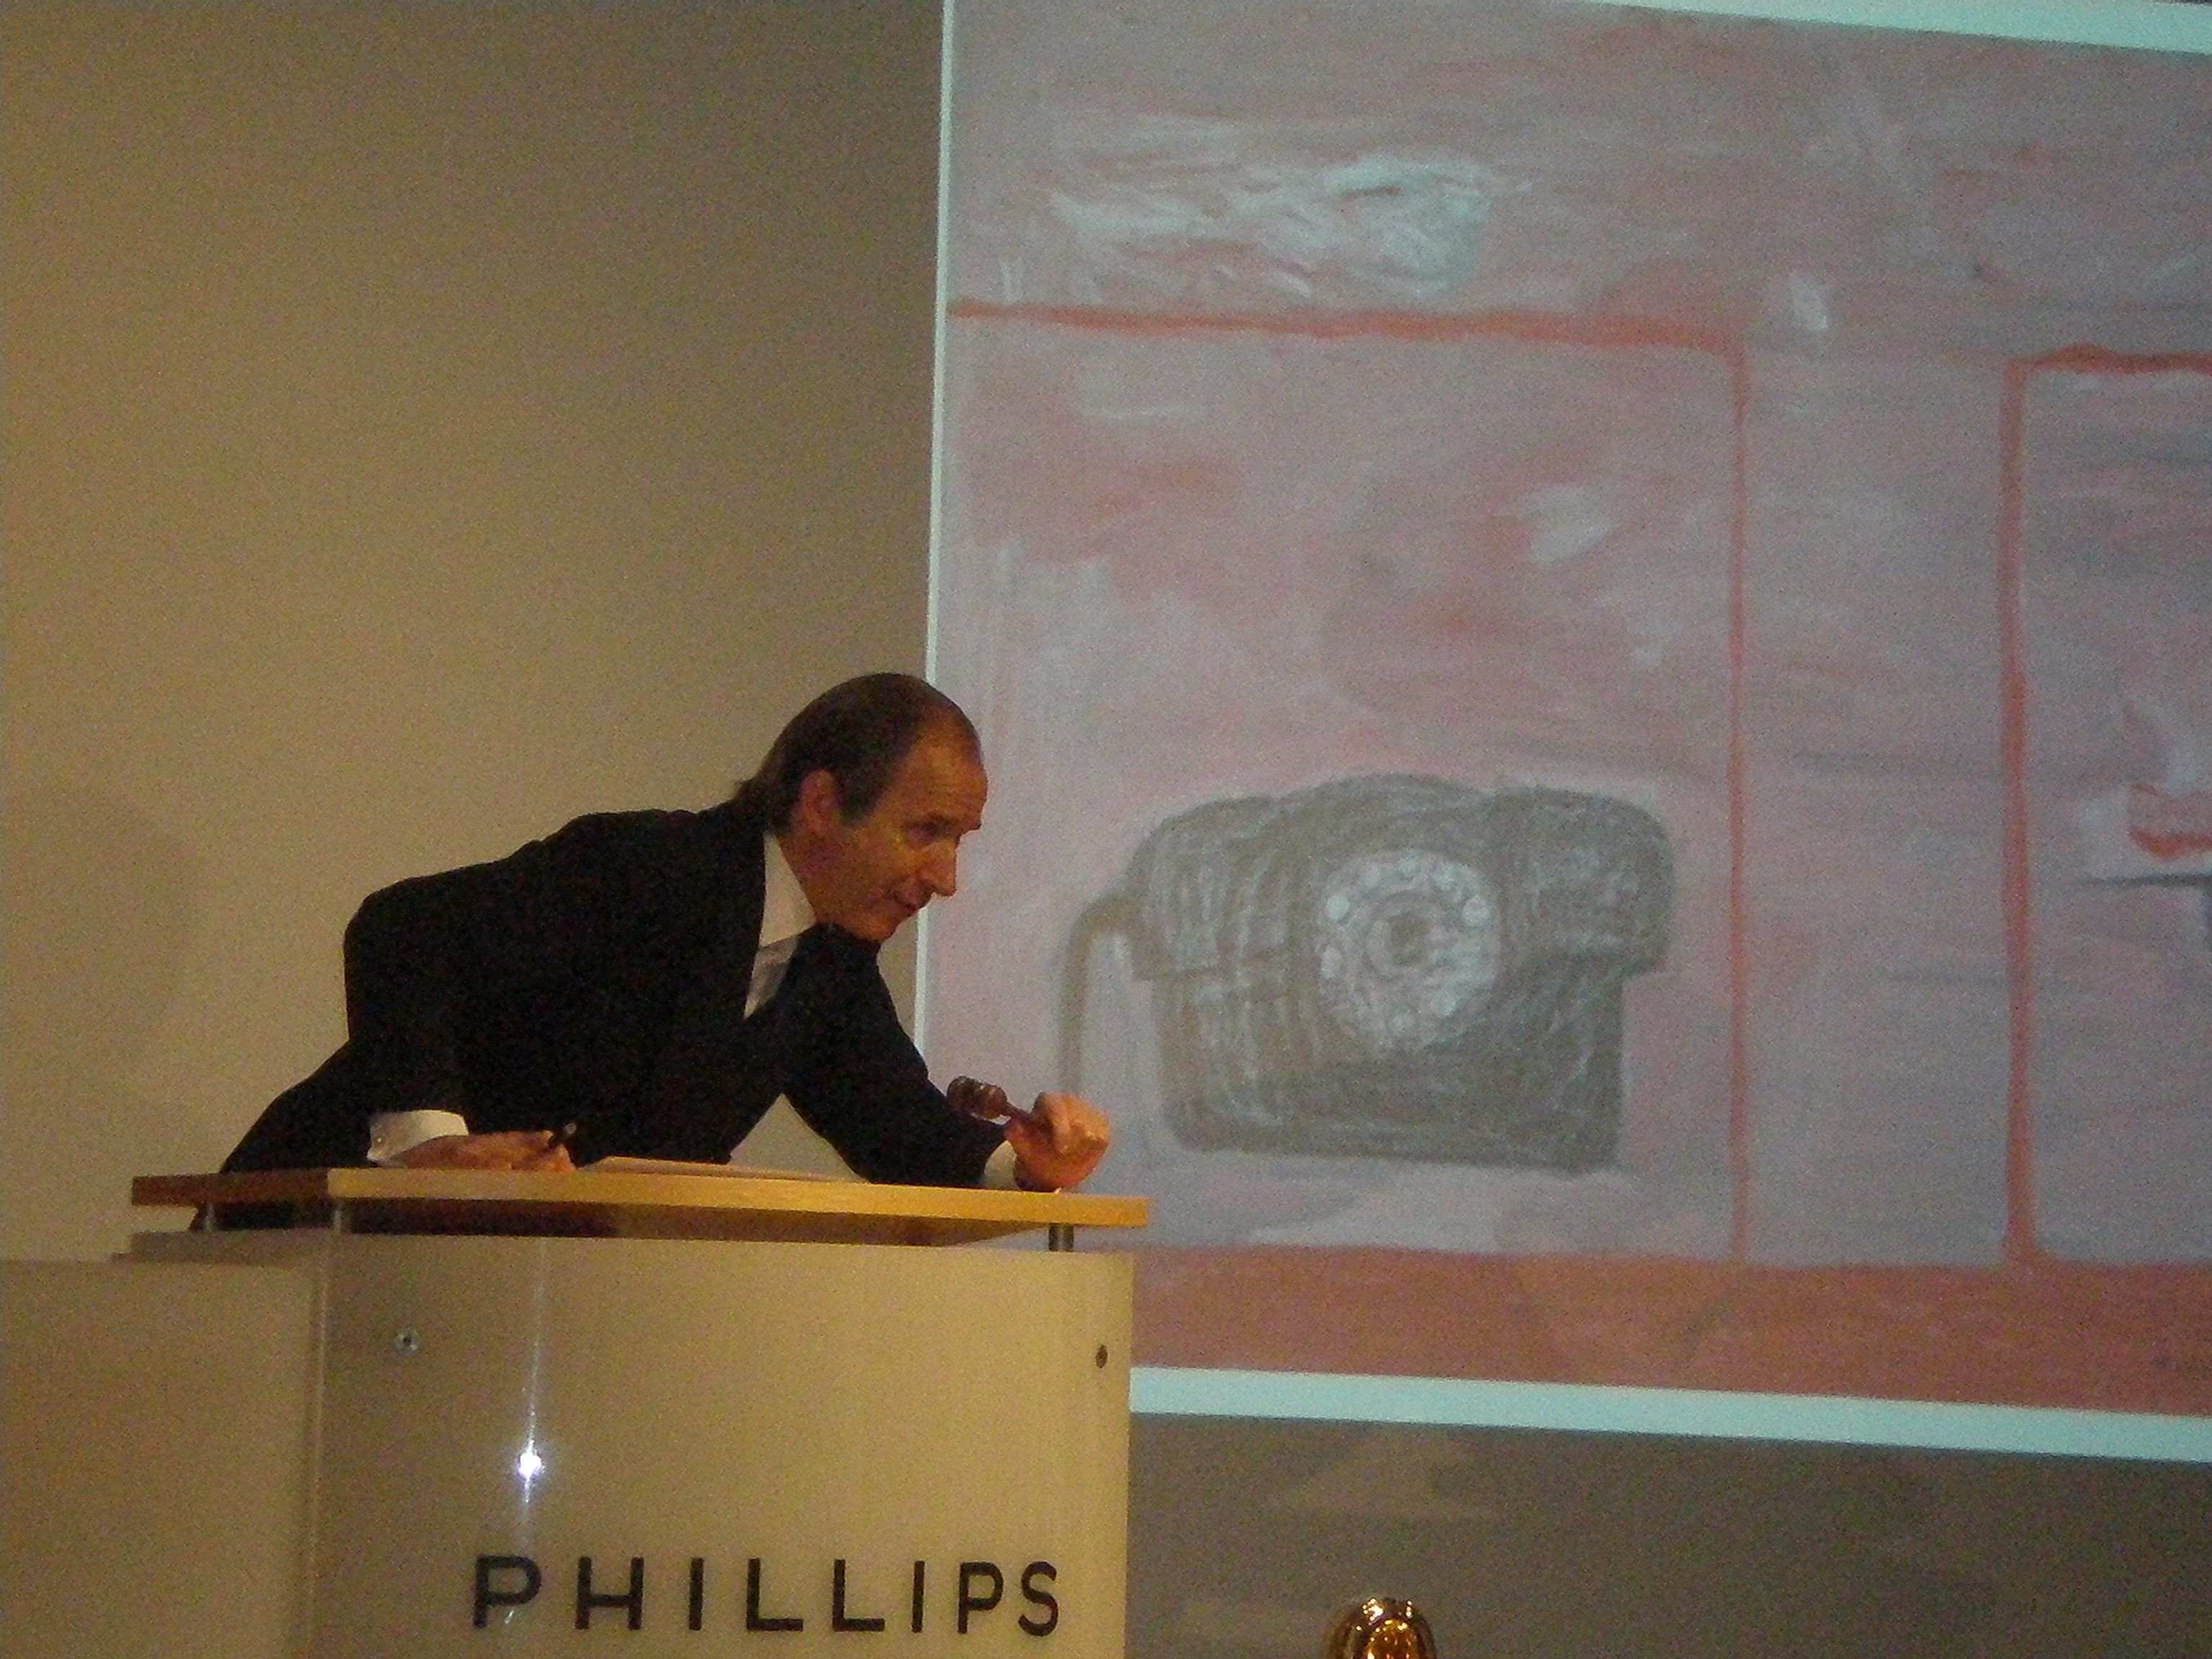 simon-de-pury-phillips-de-pury-contemporary-art-sale-may-2009-6